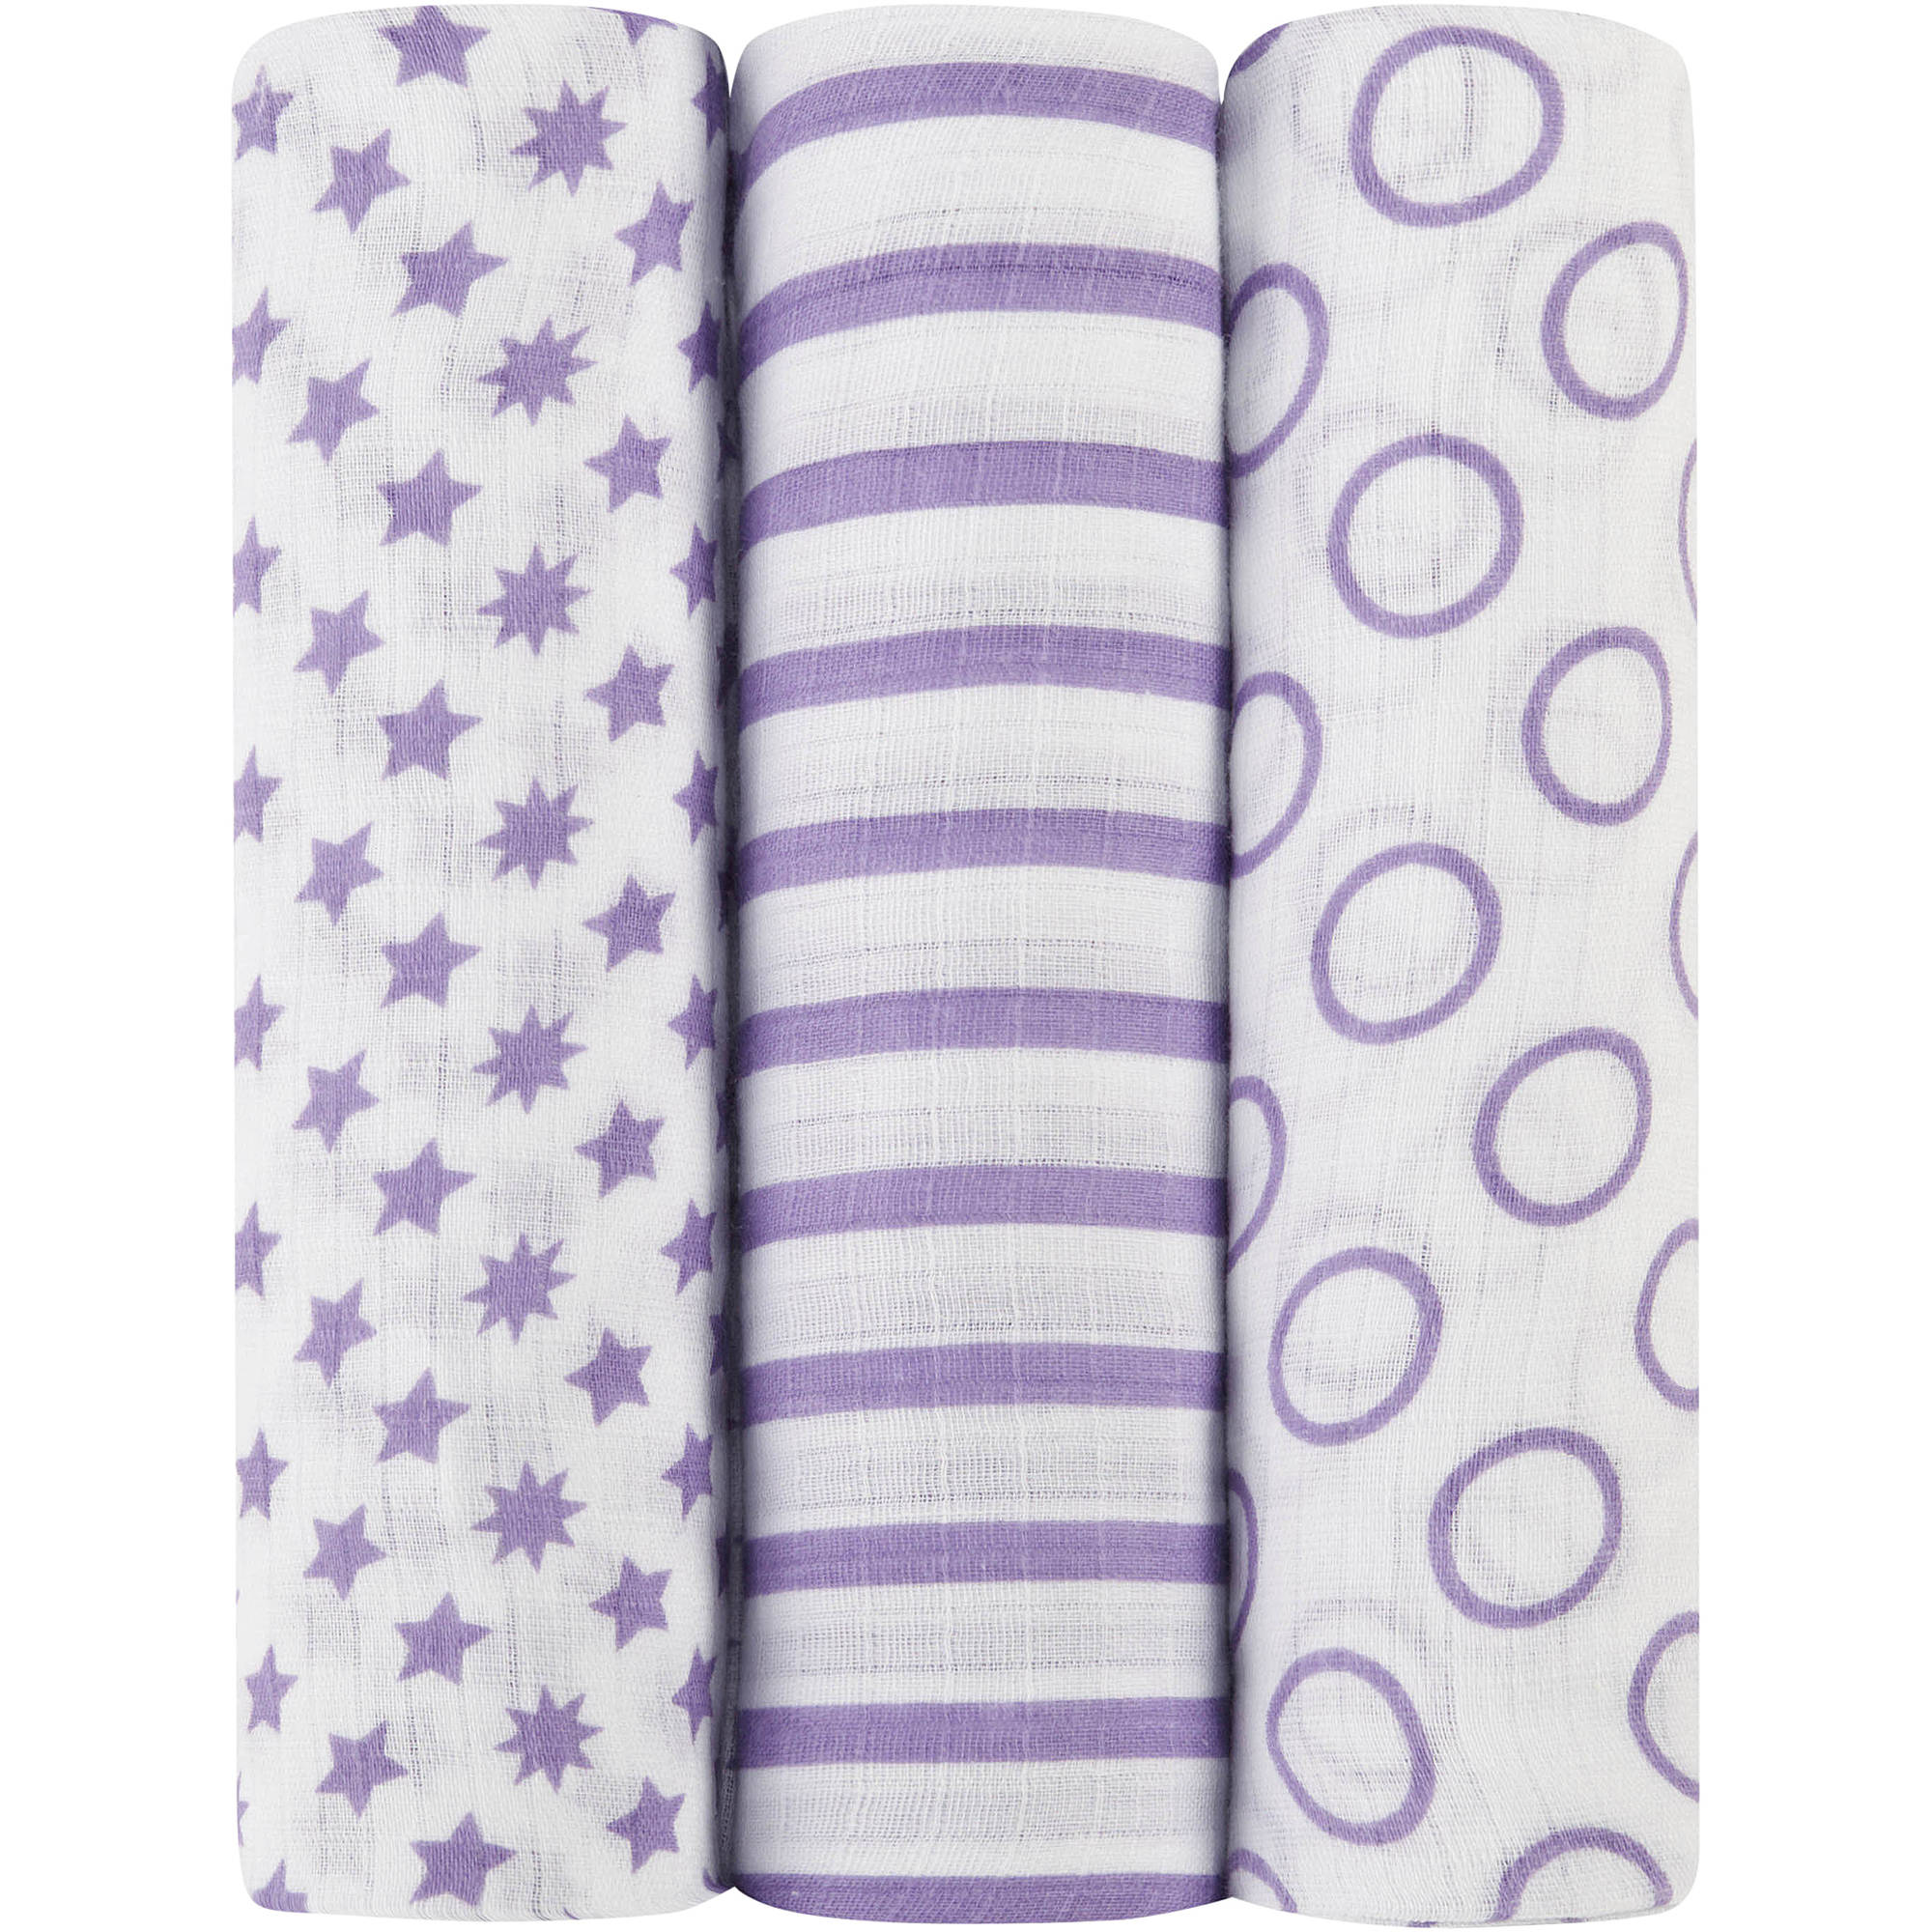 ideal baby by the makers of aden + anais Muslin Swaddles, 3pk, Cherub